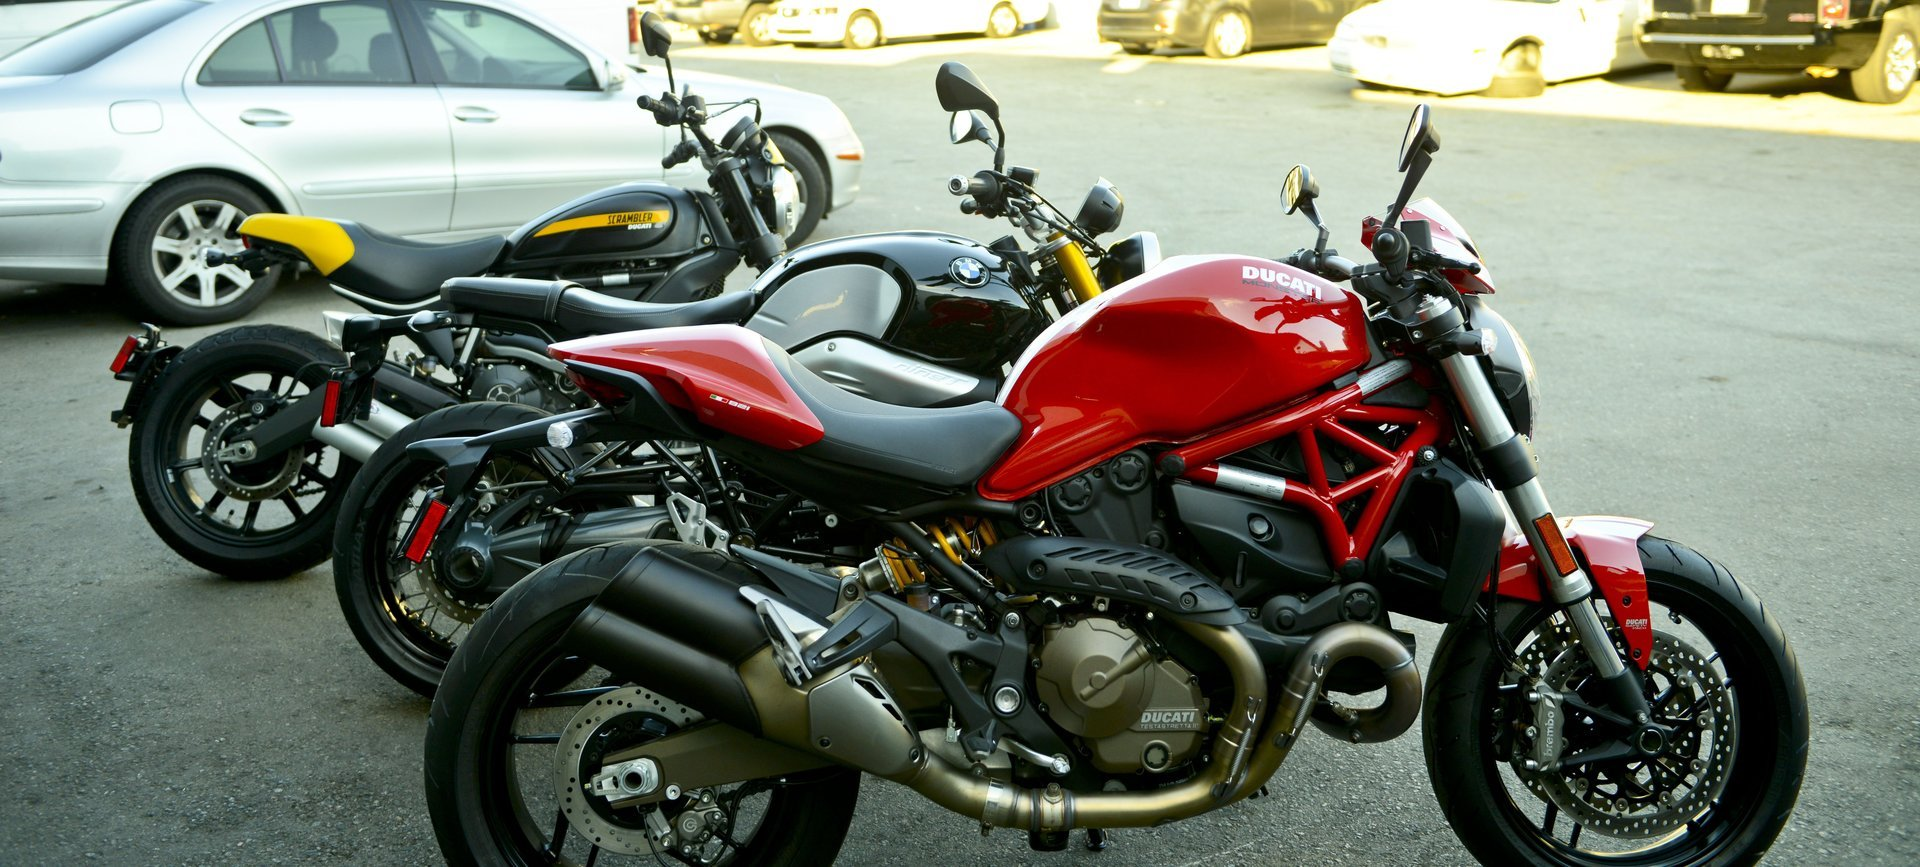 Motorcycle Rental in California Ducati Group Photos